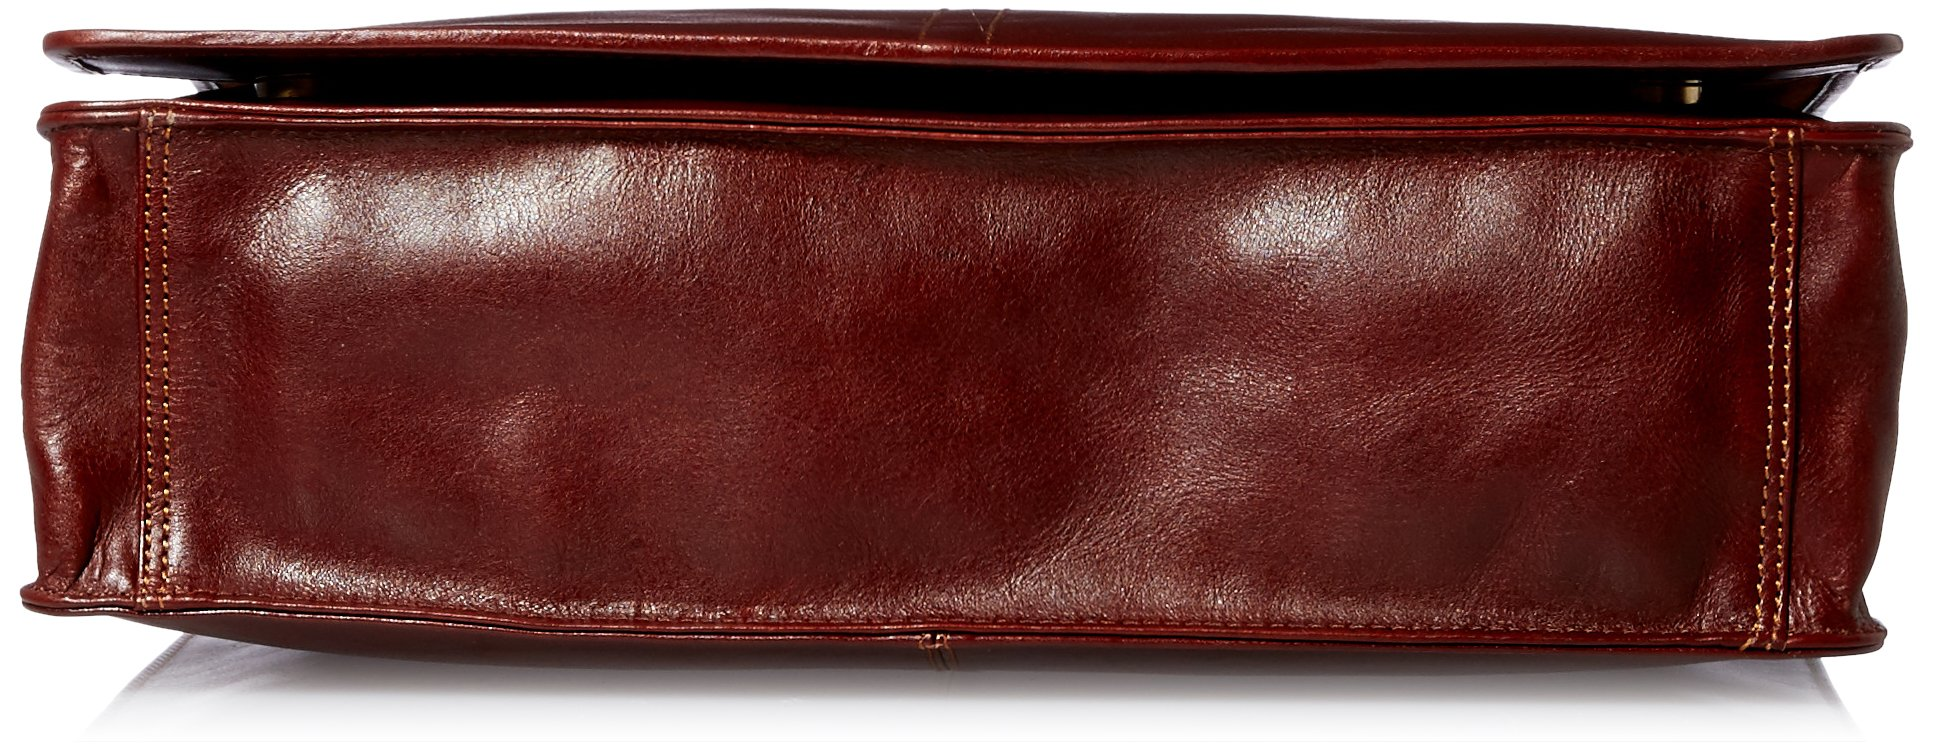 Visconti Vintage-7 Veg Tan Brown Soft Leather Messenger Bag Case, Brown, One Size by Visconti (Image #4)